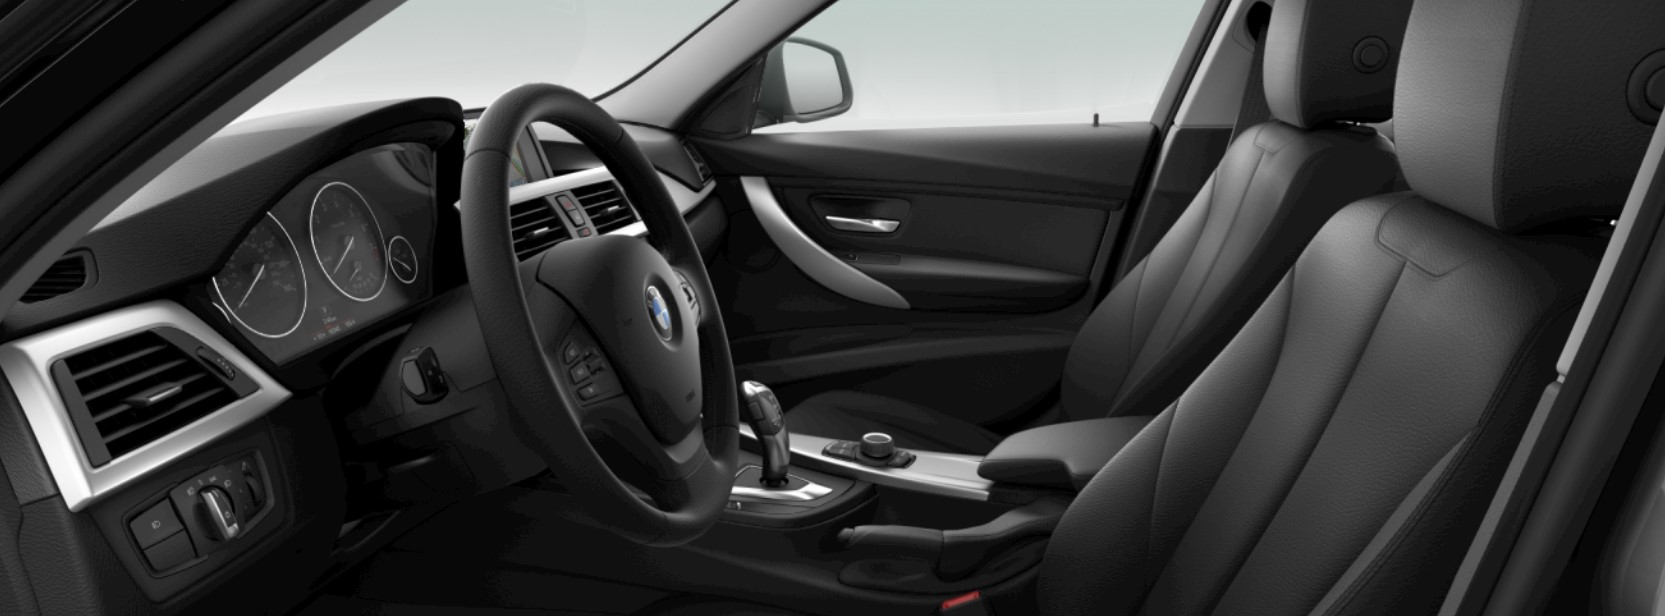 2018 BMW 3 Series 320i Black SensaTec Interior